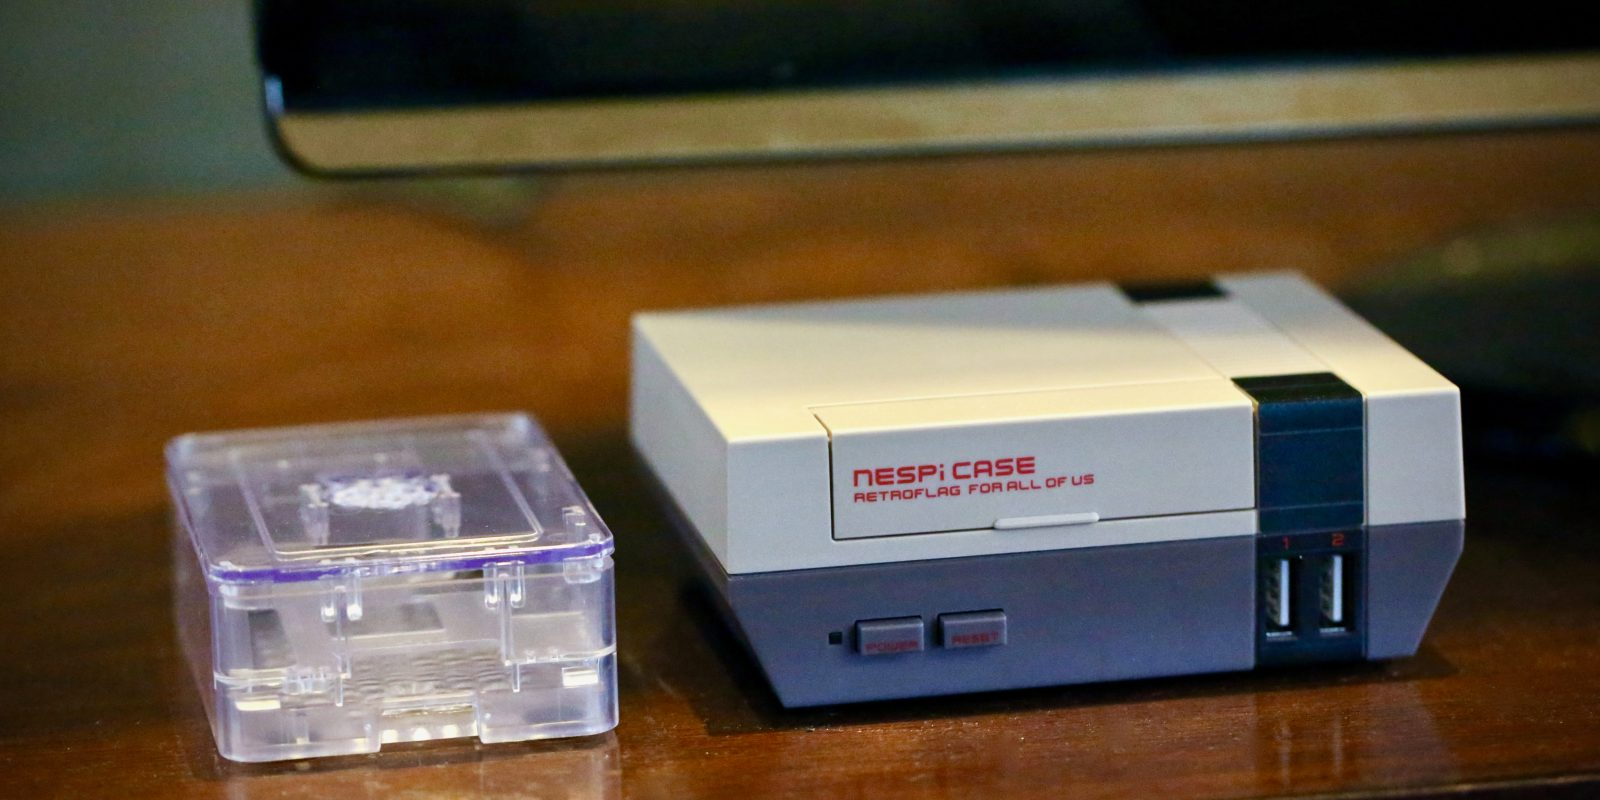 How-to: Build a $35 retro game console, Part 2 - Top 7 add